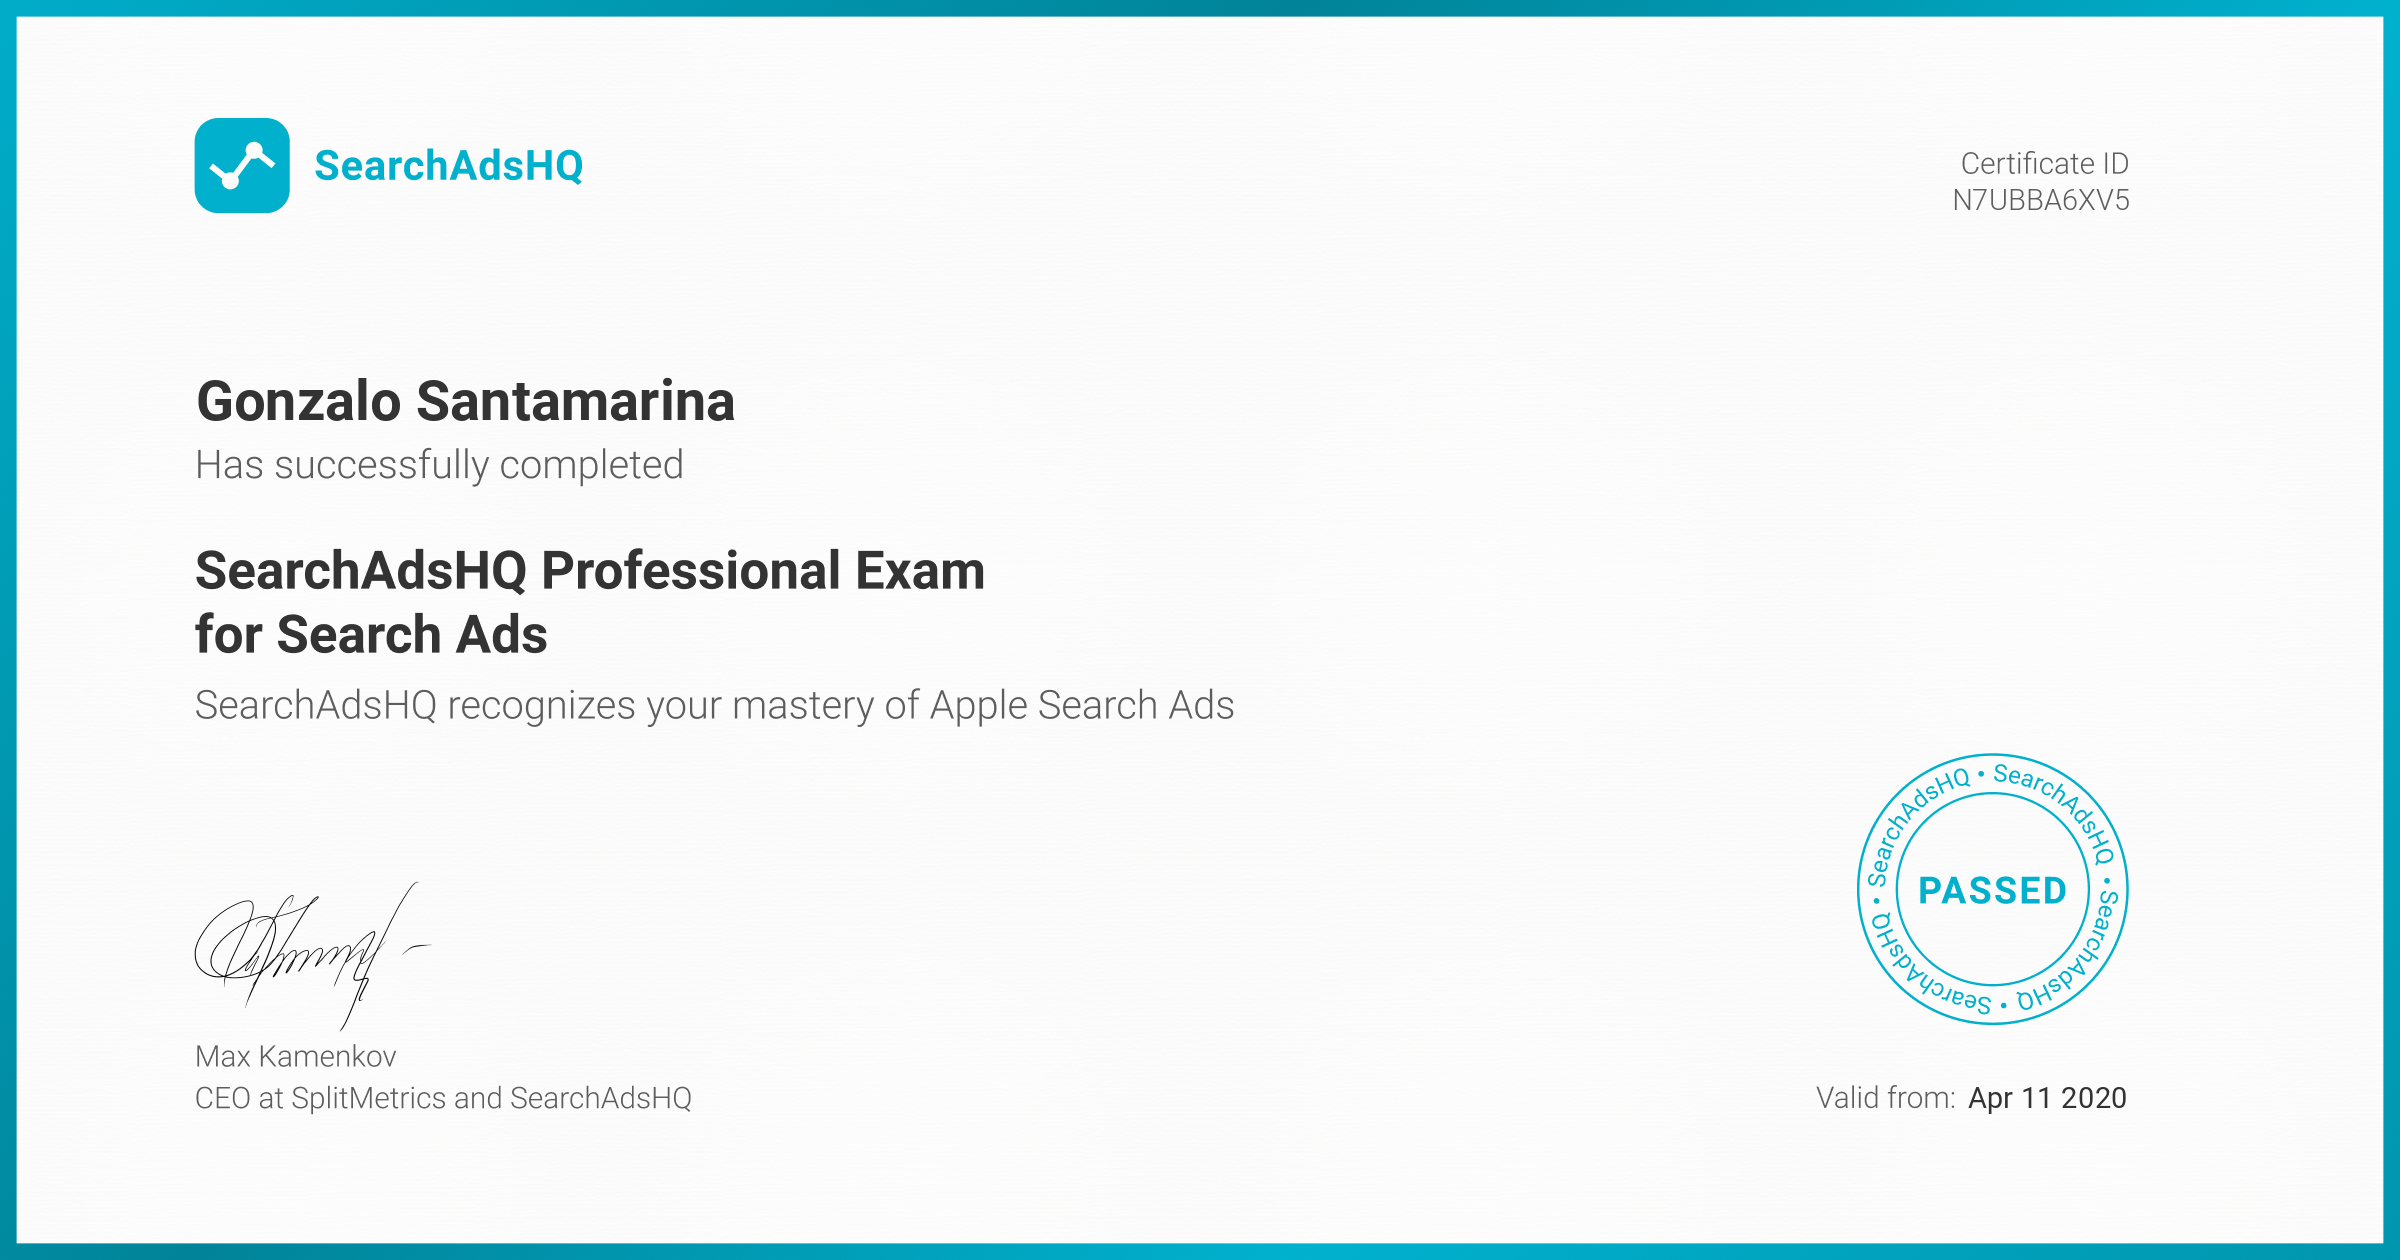 Certificate for Gonzalo Santamarina | SearchAdsHQ Professional Exam for Search Ads